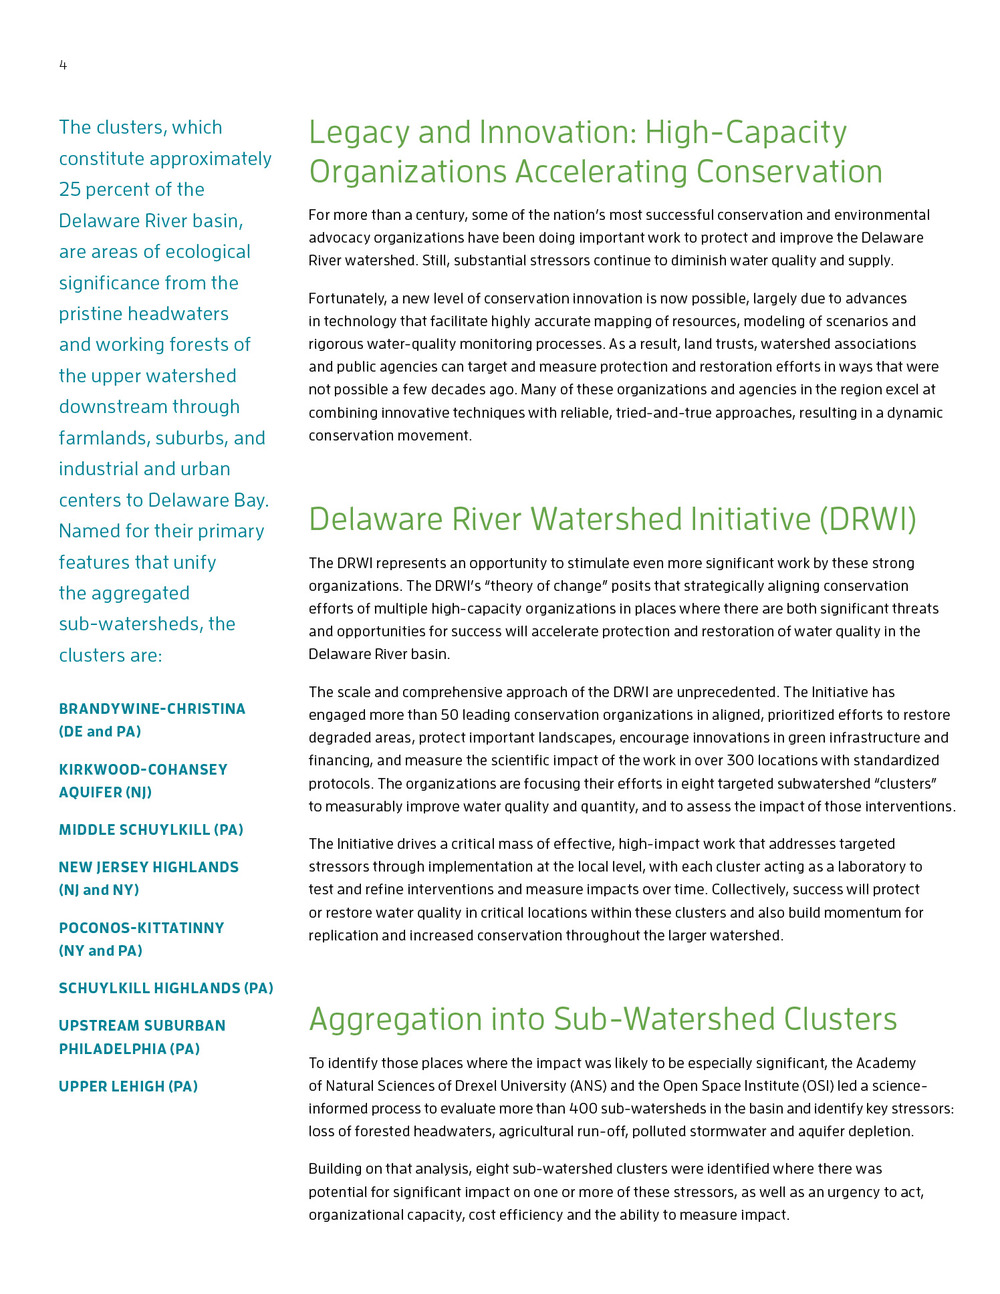 DRWI_Overview4.jpg